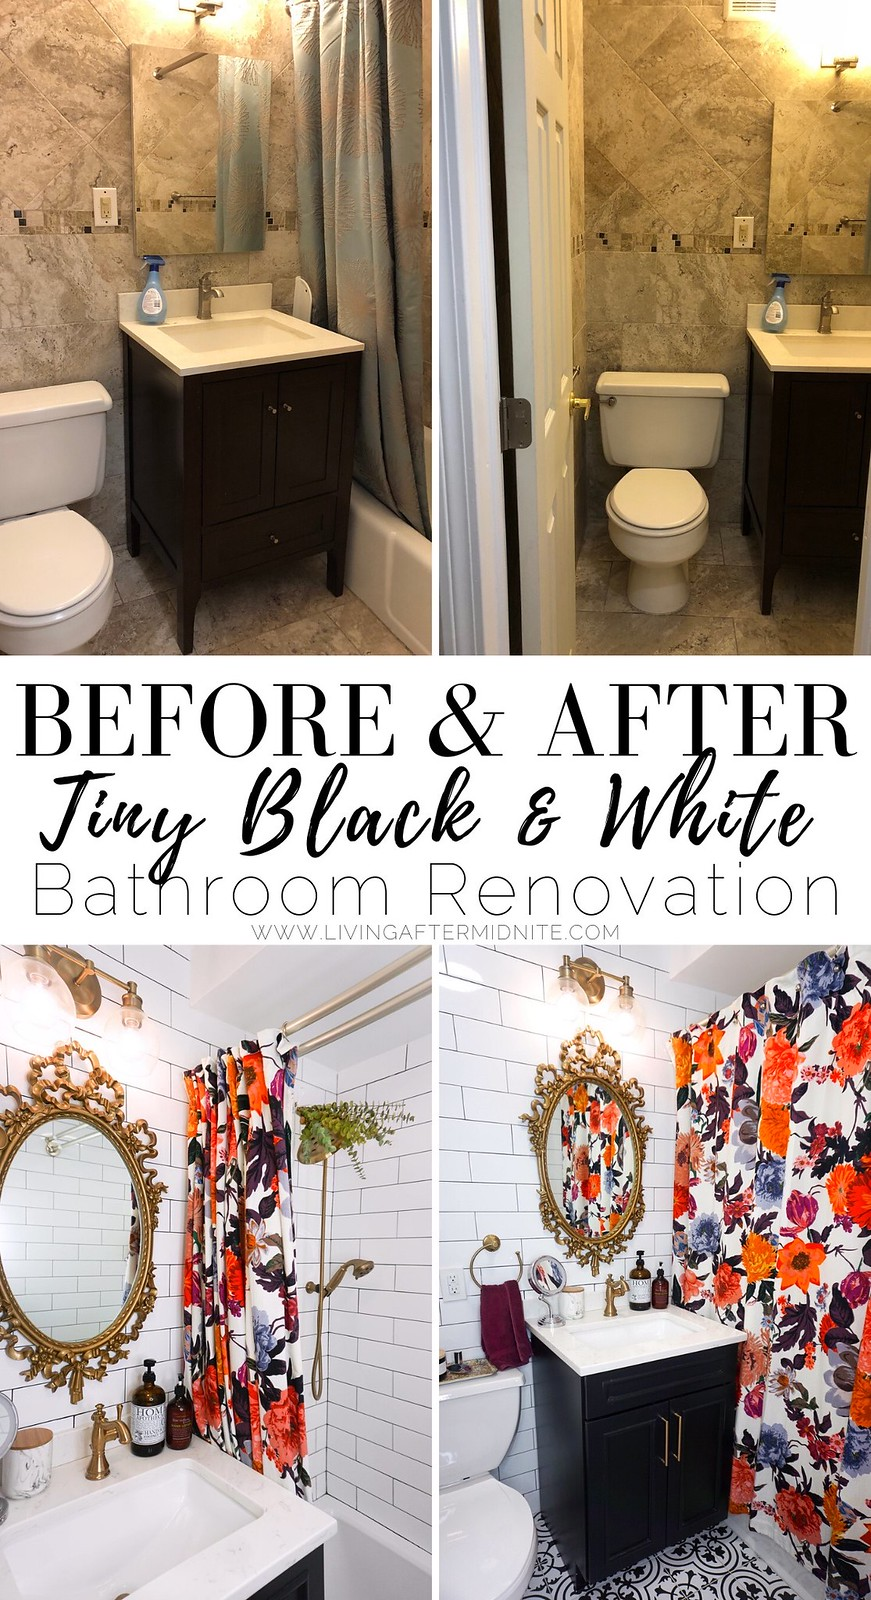 Before & After Photos: My Tiny Black and White Bathroom Renovation | Bathroom Decor | Bathroom Remodel | Black, White & Gold Bathroom Design | Gold Antique Vintage Bathroom Mirror | Anthropologie Bold Floral Shower Curtain | White Subway Tile Black Grout | Vintage Style Ceramic Floor Tile | Small Bathroom Remodel | Bathroom Remodel with Tub | Bathroom Decor Ideas | Apartment Bathroom Decor | Black Bathroom Vanity